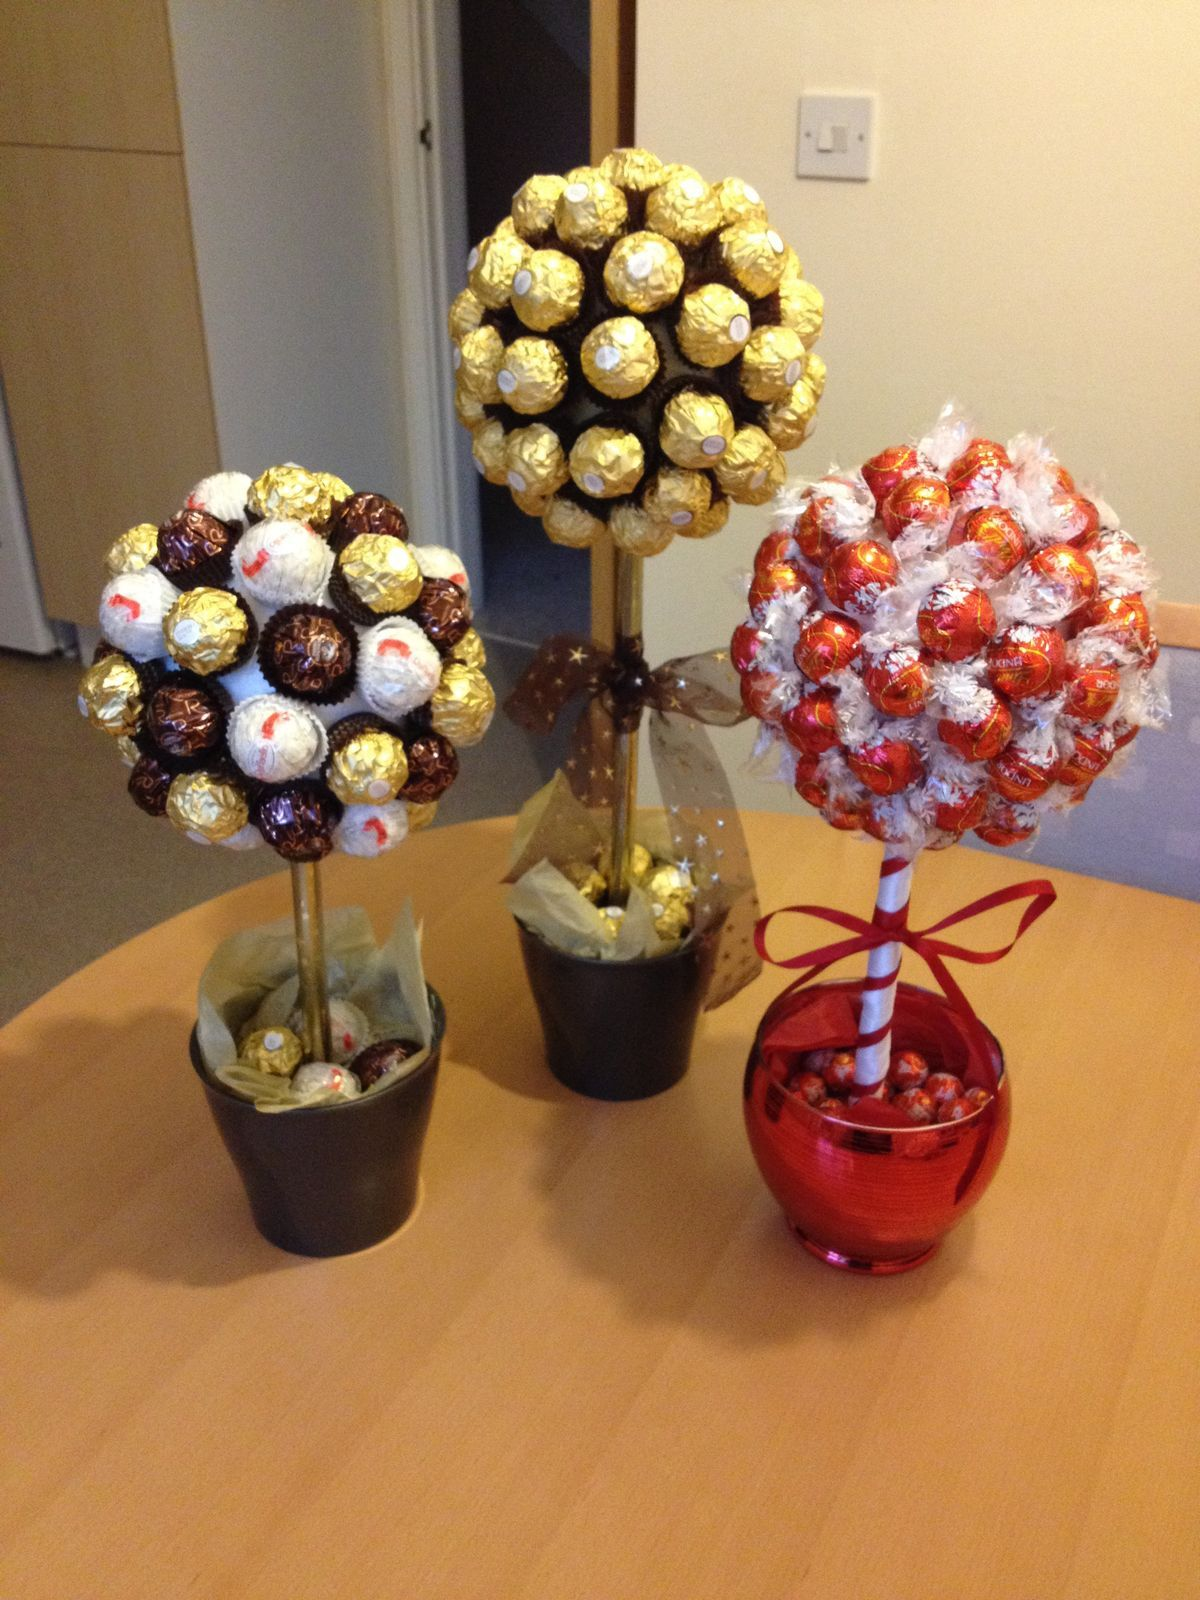 Roche Chocolate Tree Gift Ideas Gifts Chocolate Bouquet Candy